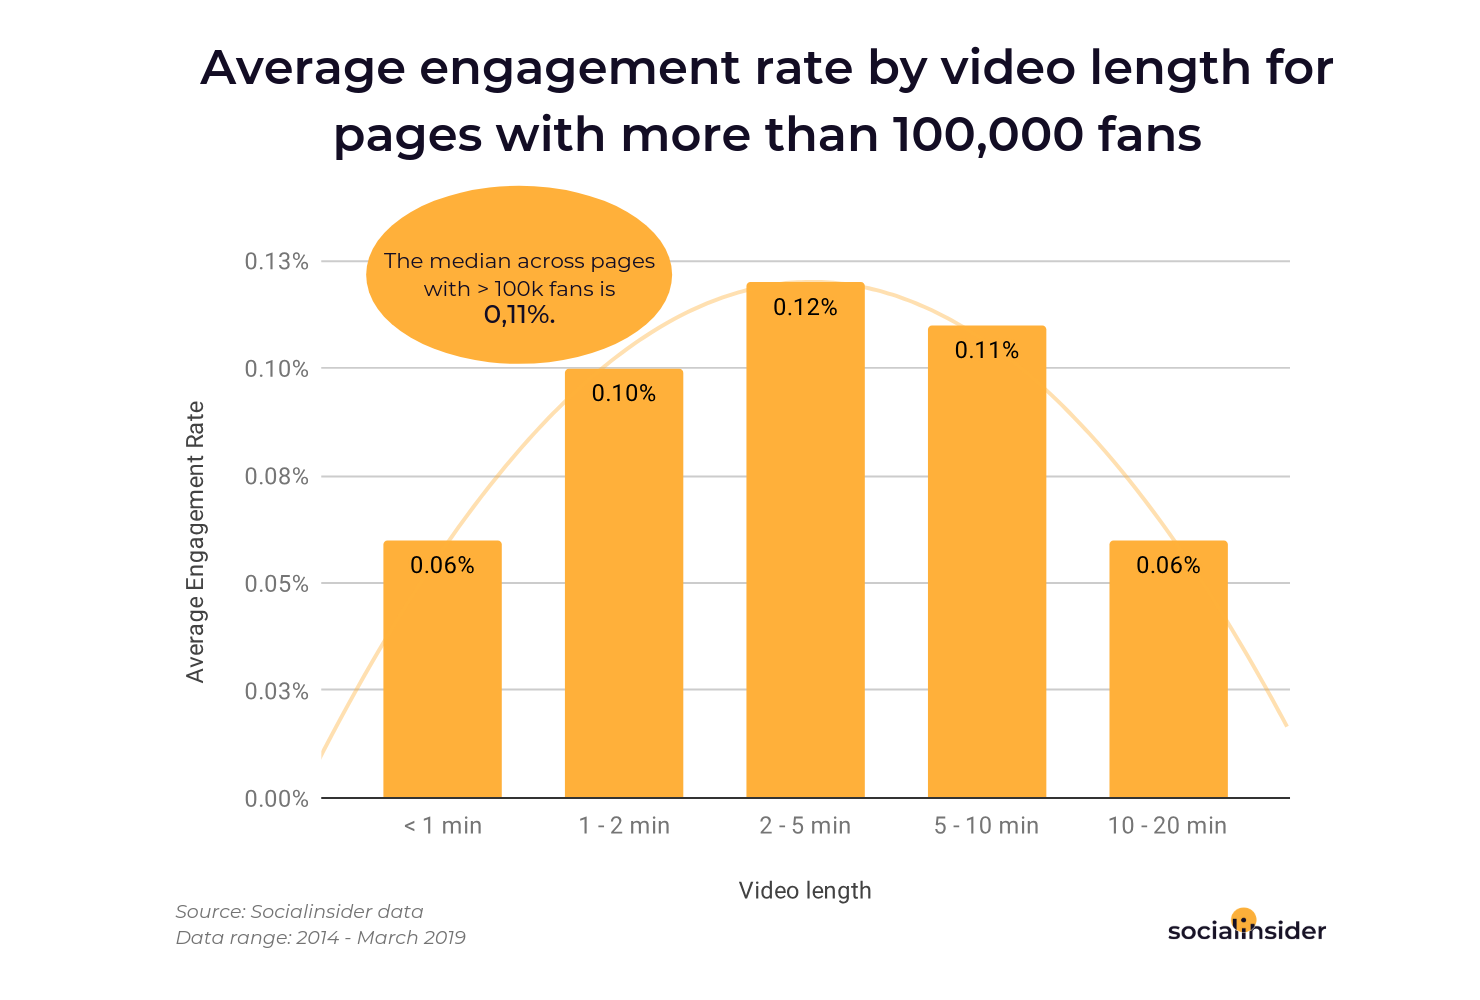 Average engagement rate by video length for pages with more than 100,000 fans